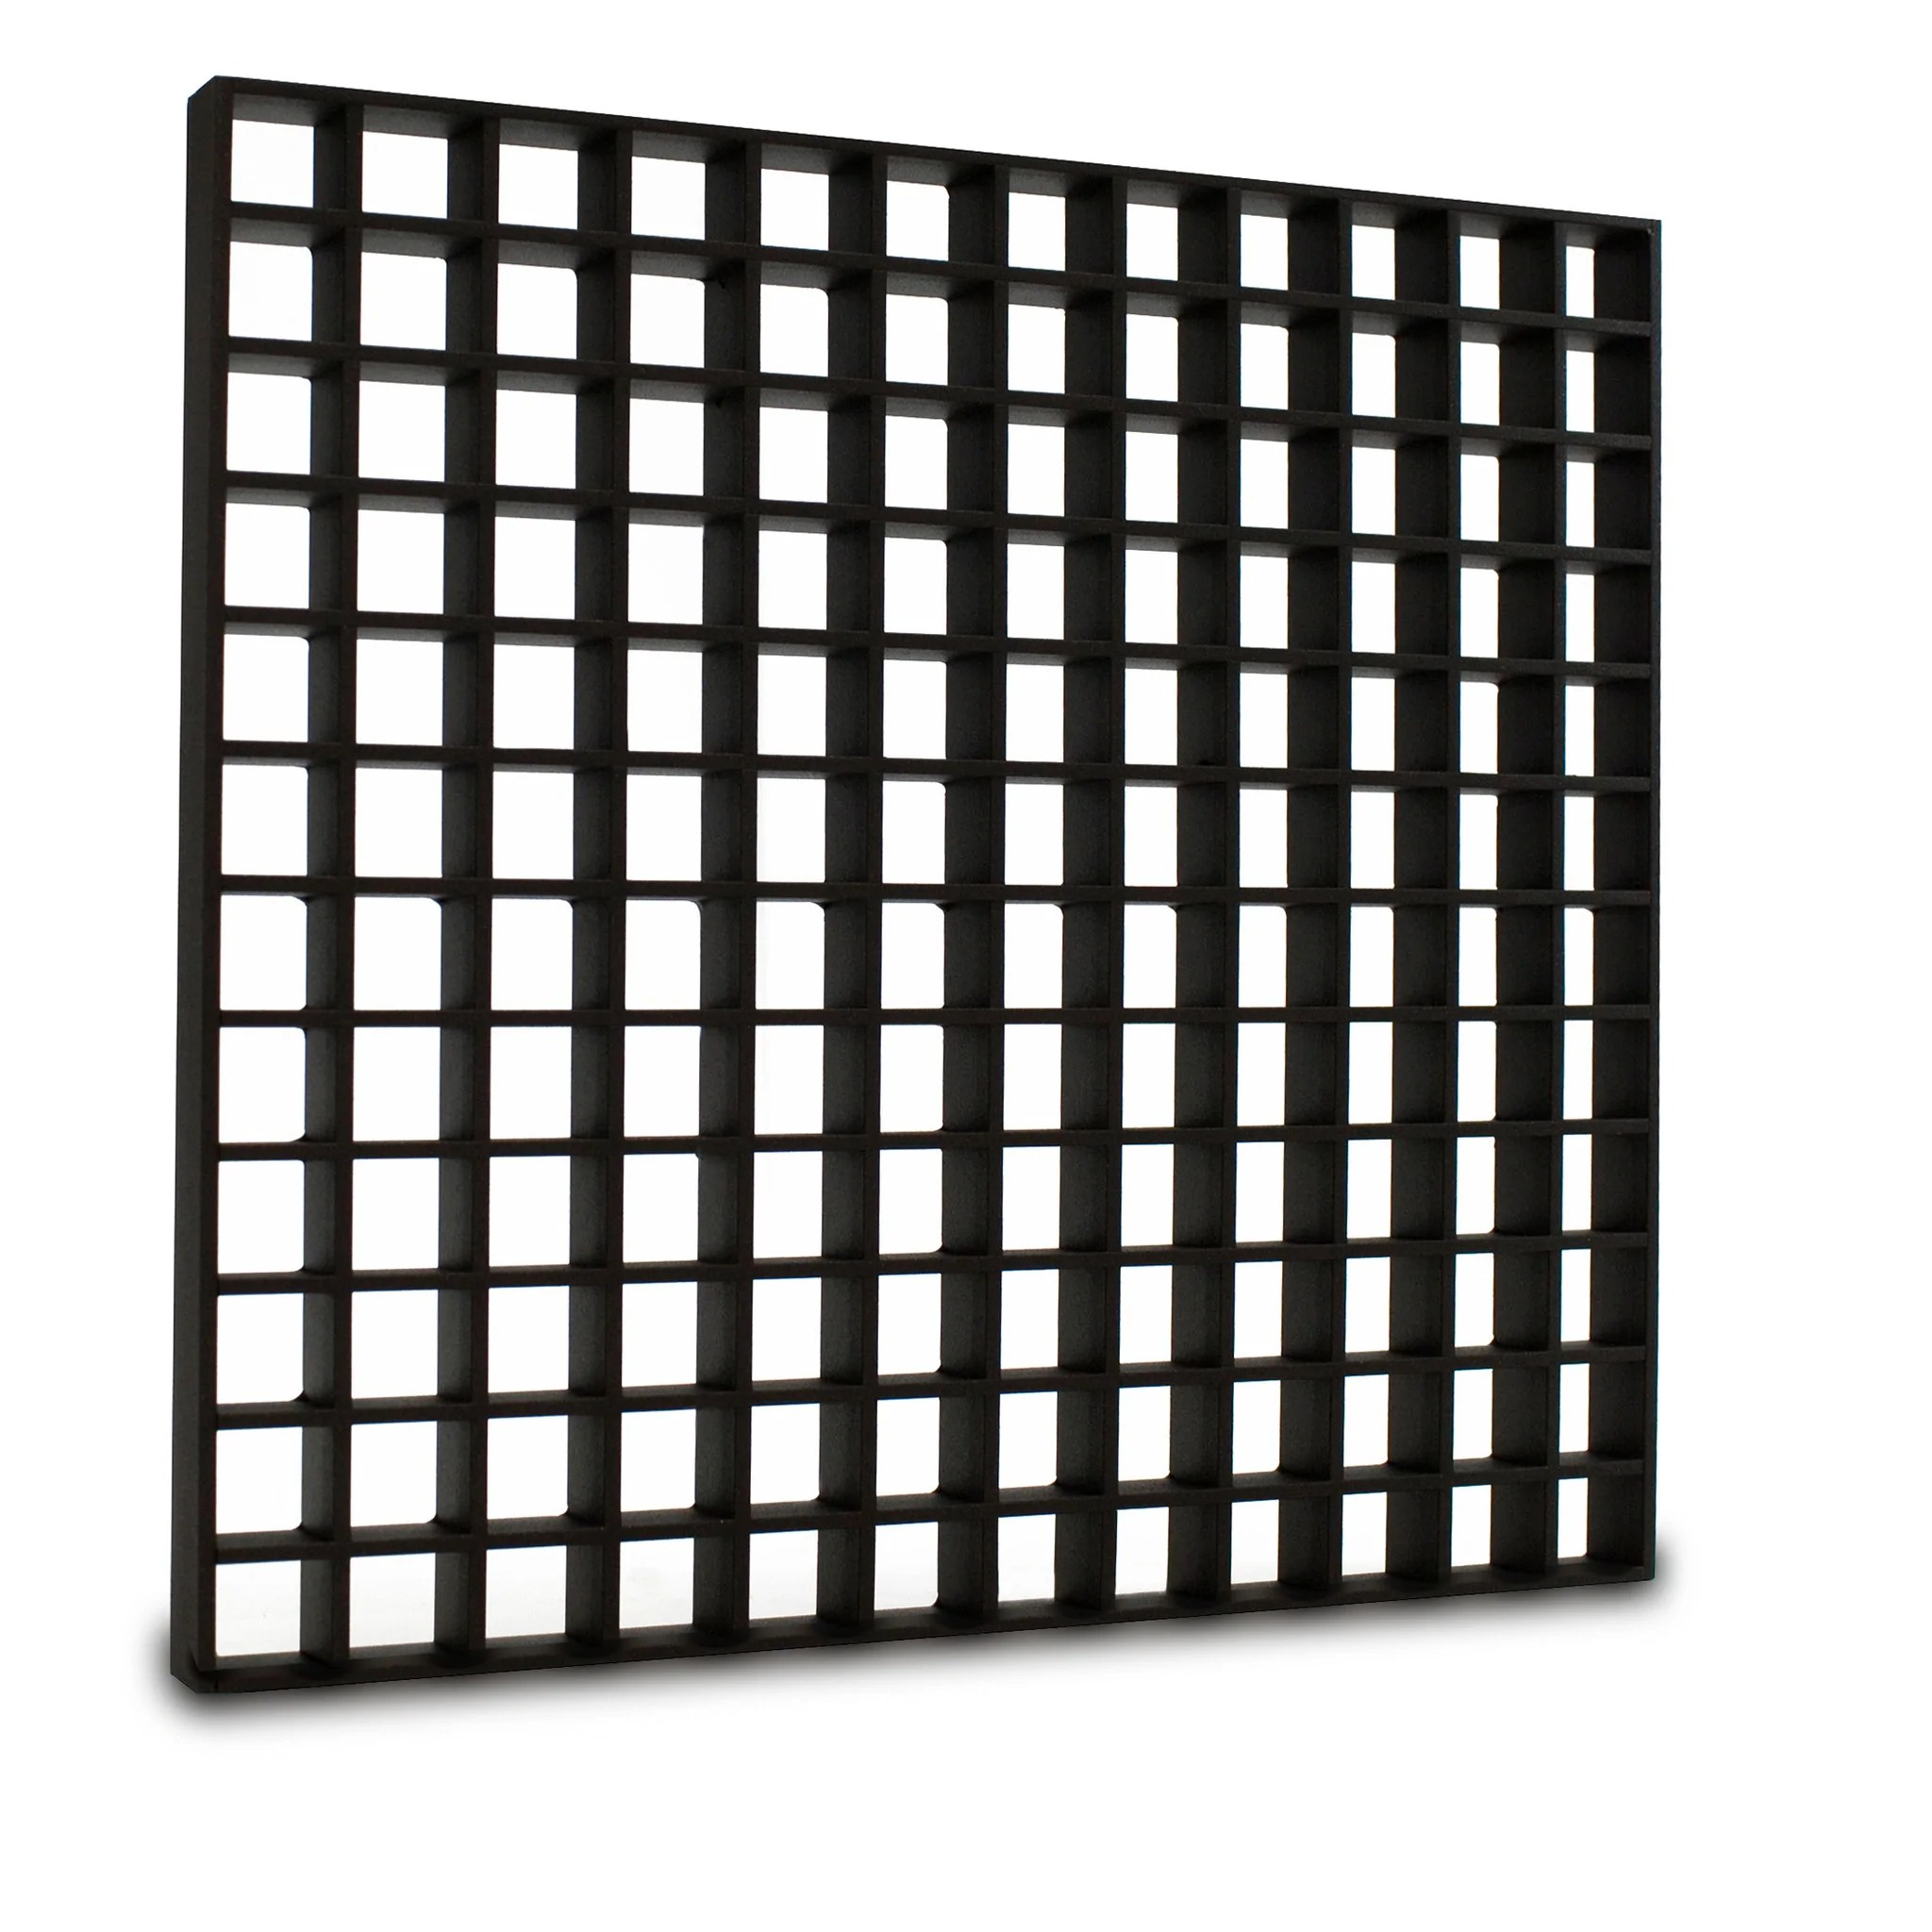 egg crate grilles architectural grille